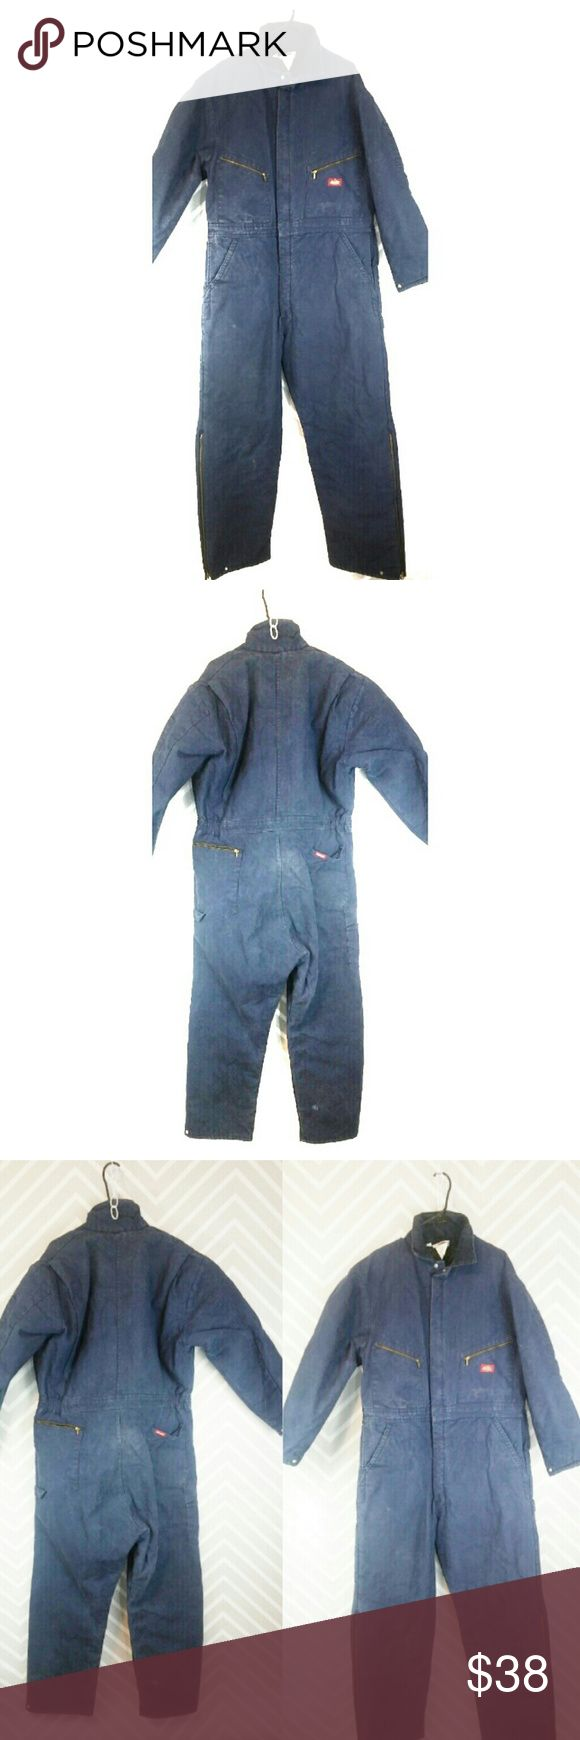 """Dickies Insulated Work Coveralls Unisex Regular Regular Work Coveralls Dickies Insulated Chest 46 48 Size blue.  Reasonable offers always welcome! No trades. Bundle &$ave!  Fully lined to keep you warm and safe. Thick, heavy quality. These have been worked in. Discolorations throughout 1 hole in back of right leg, all zippers & pockets are functional. As is, as pictured/described. Approximate flat measurements: 26.5""""chest 62.5""""shoulder to hem 30.5""""inseam 20""""sleeve inseam 181TM38BN1  Blue…"""